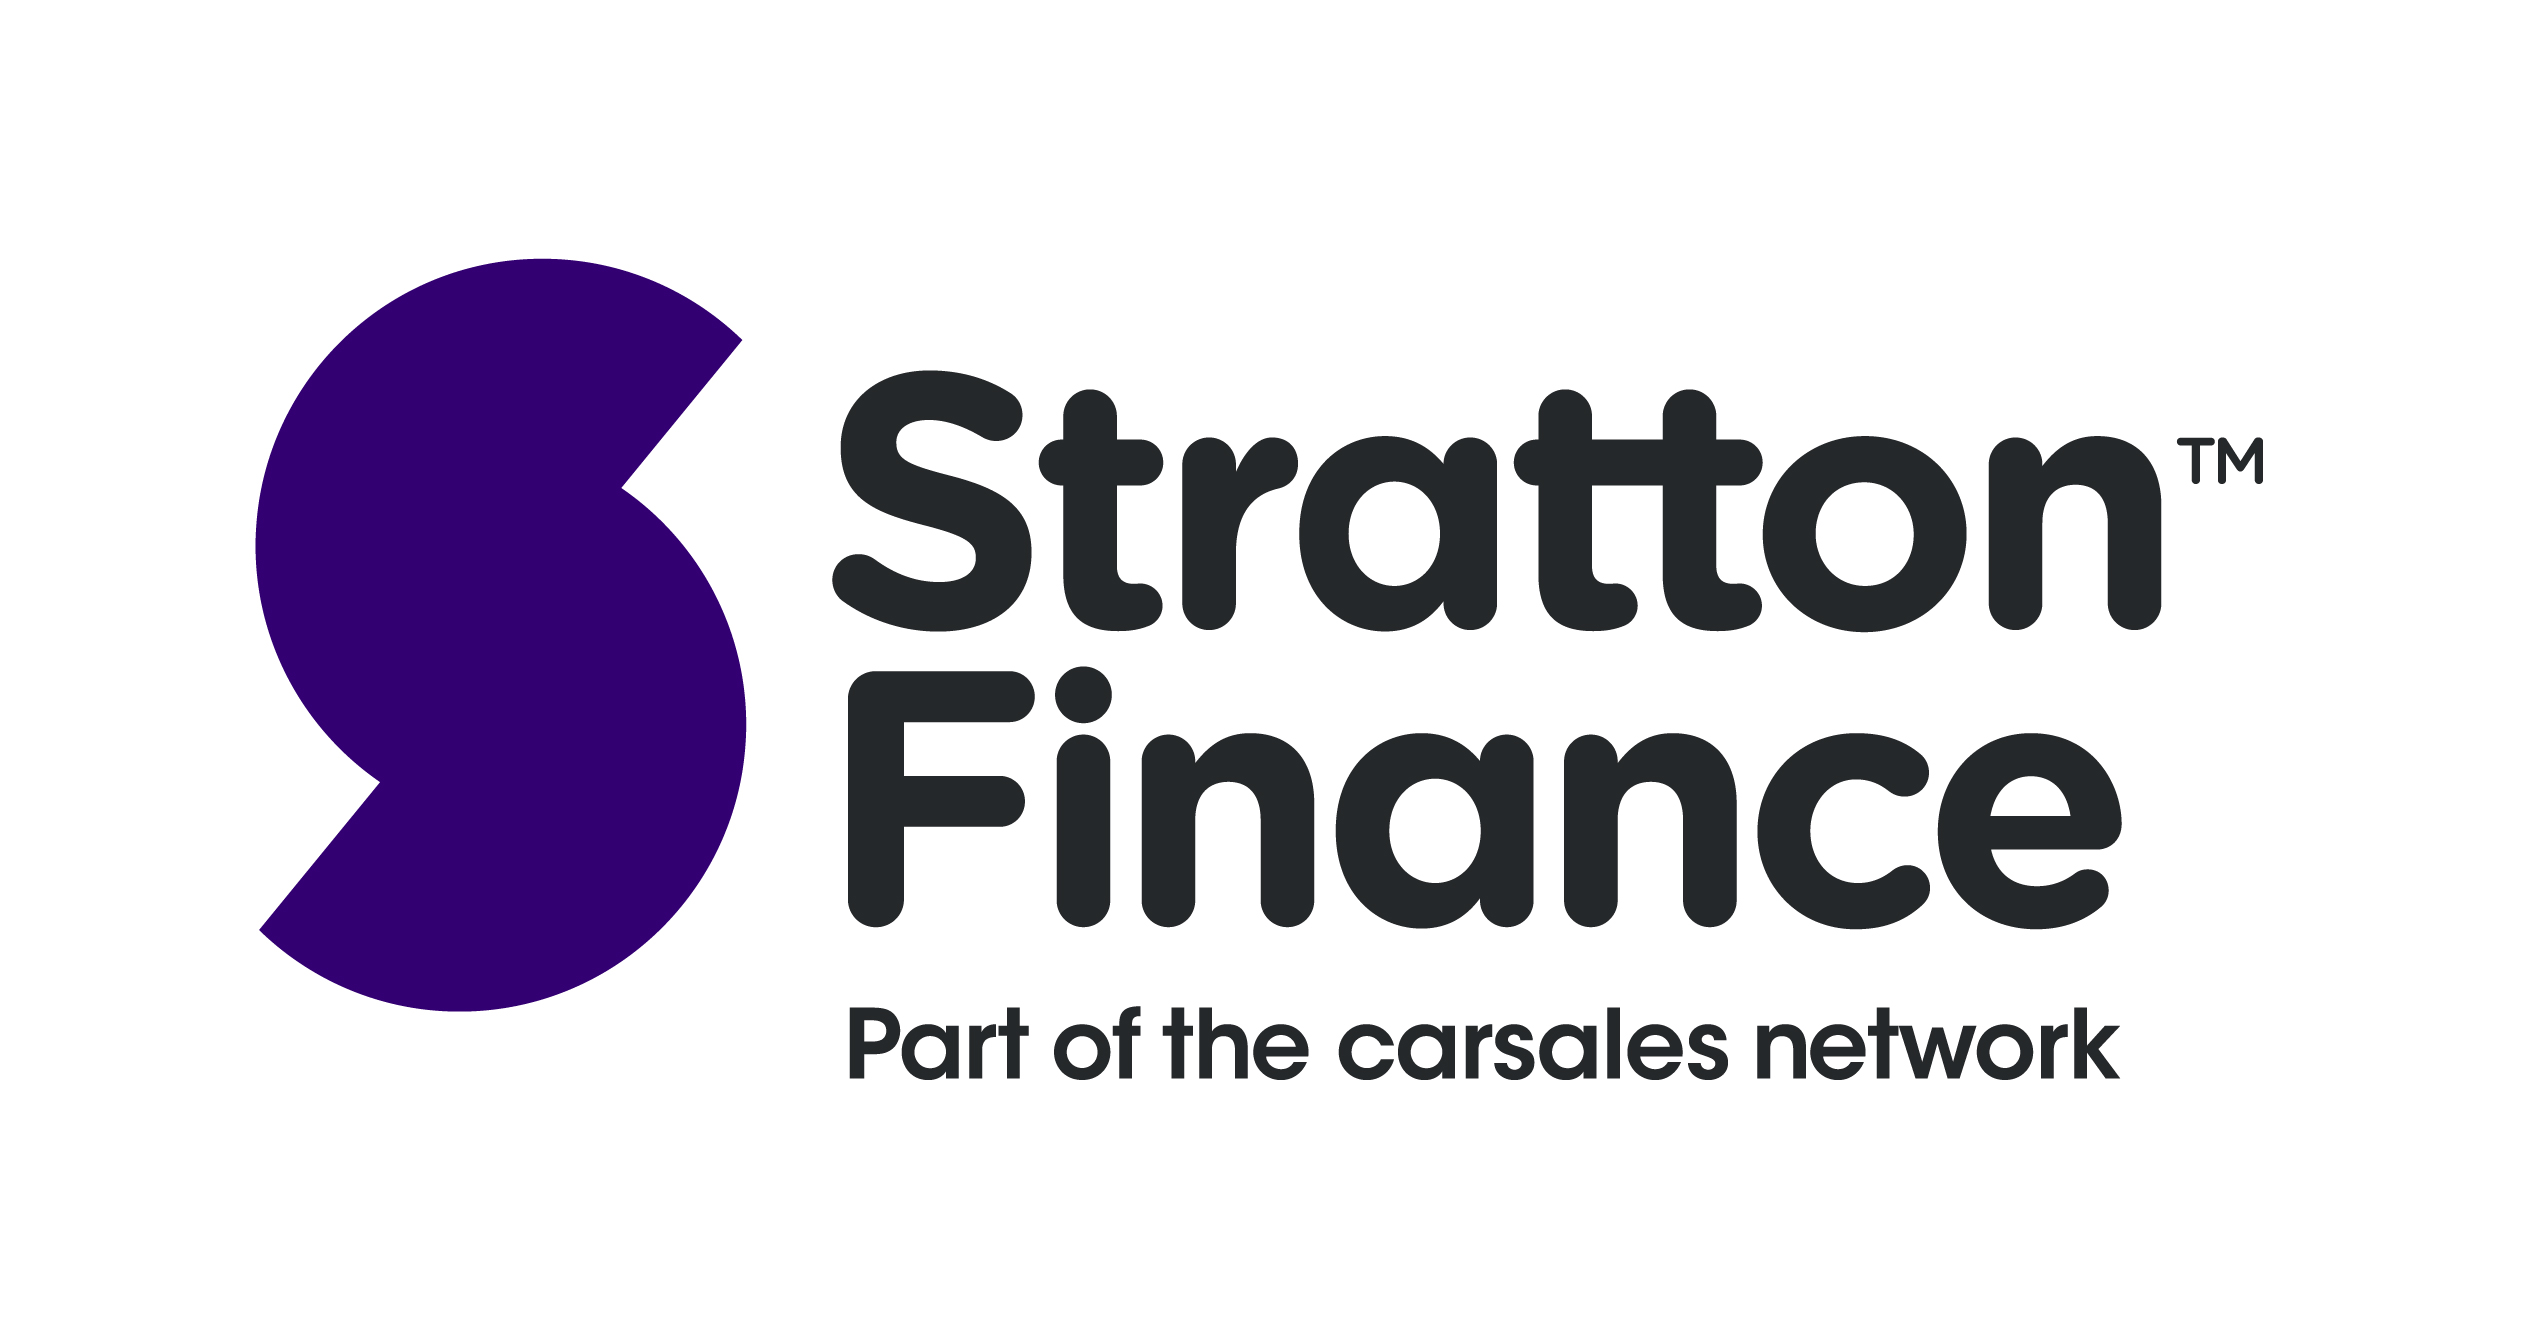 Start your asset finance broker franchise | Part of the carsales network